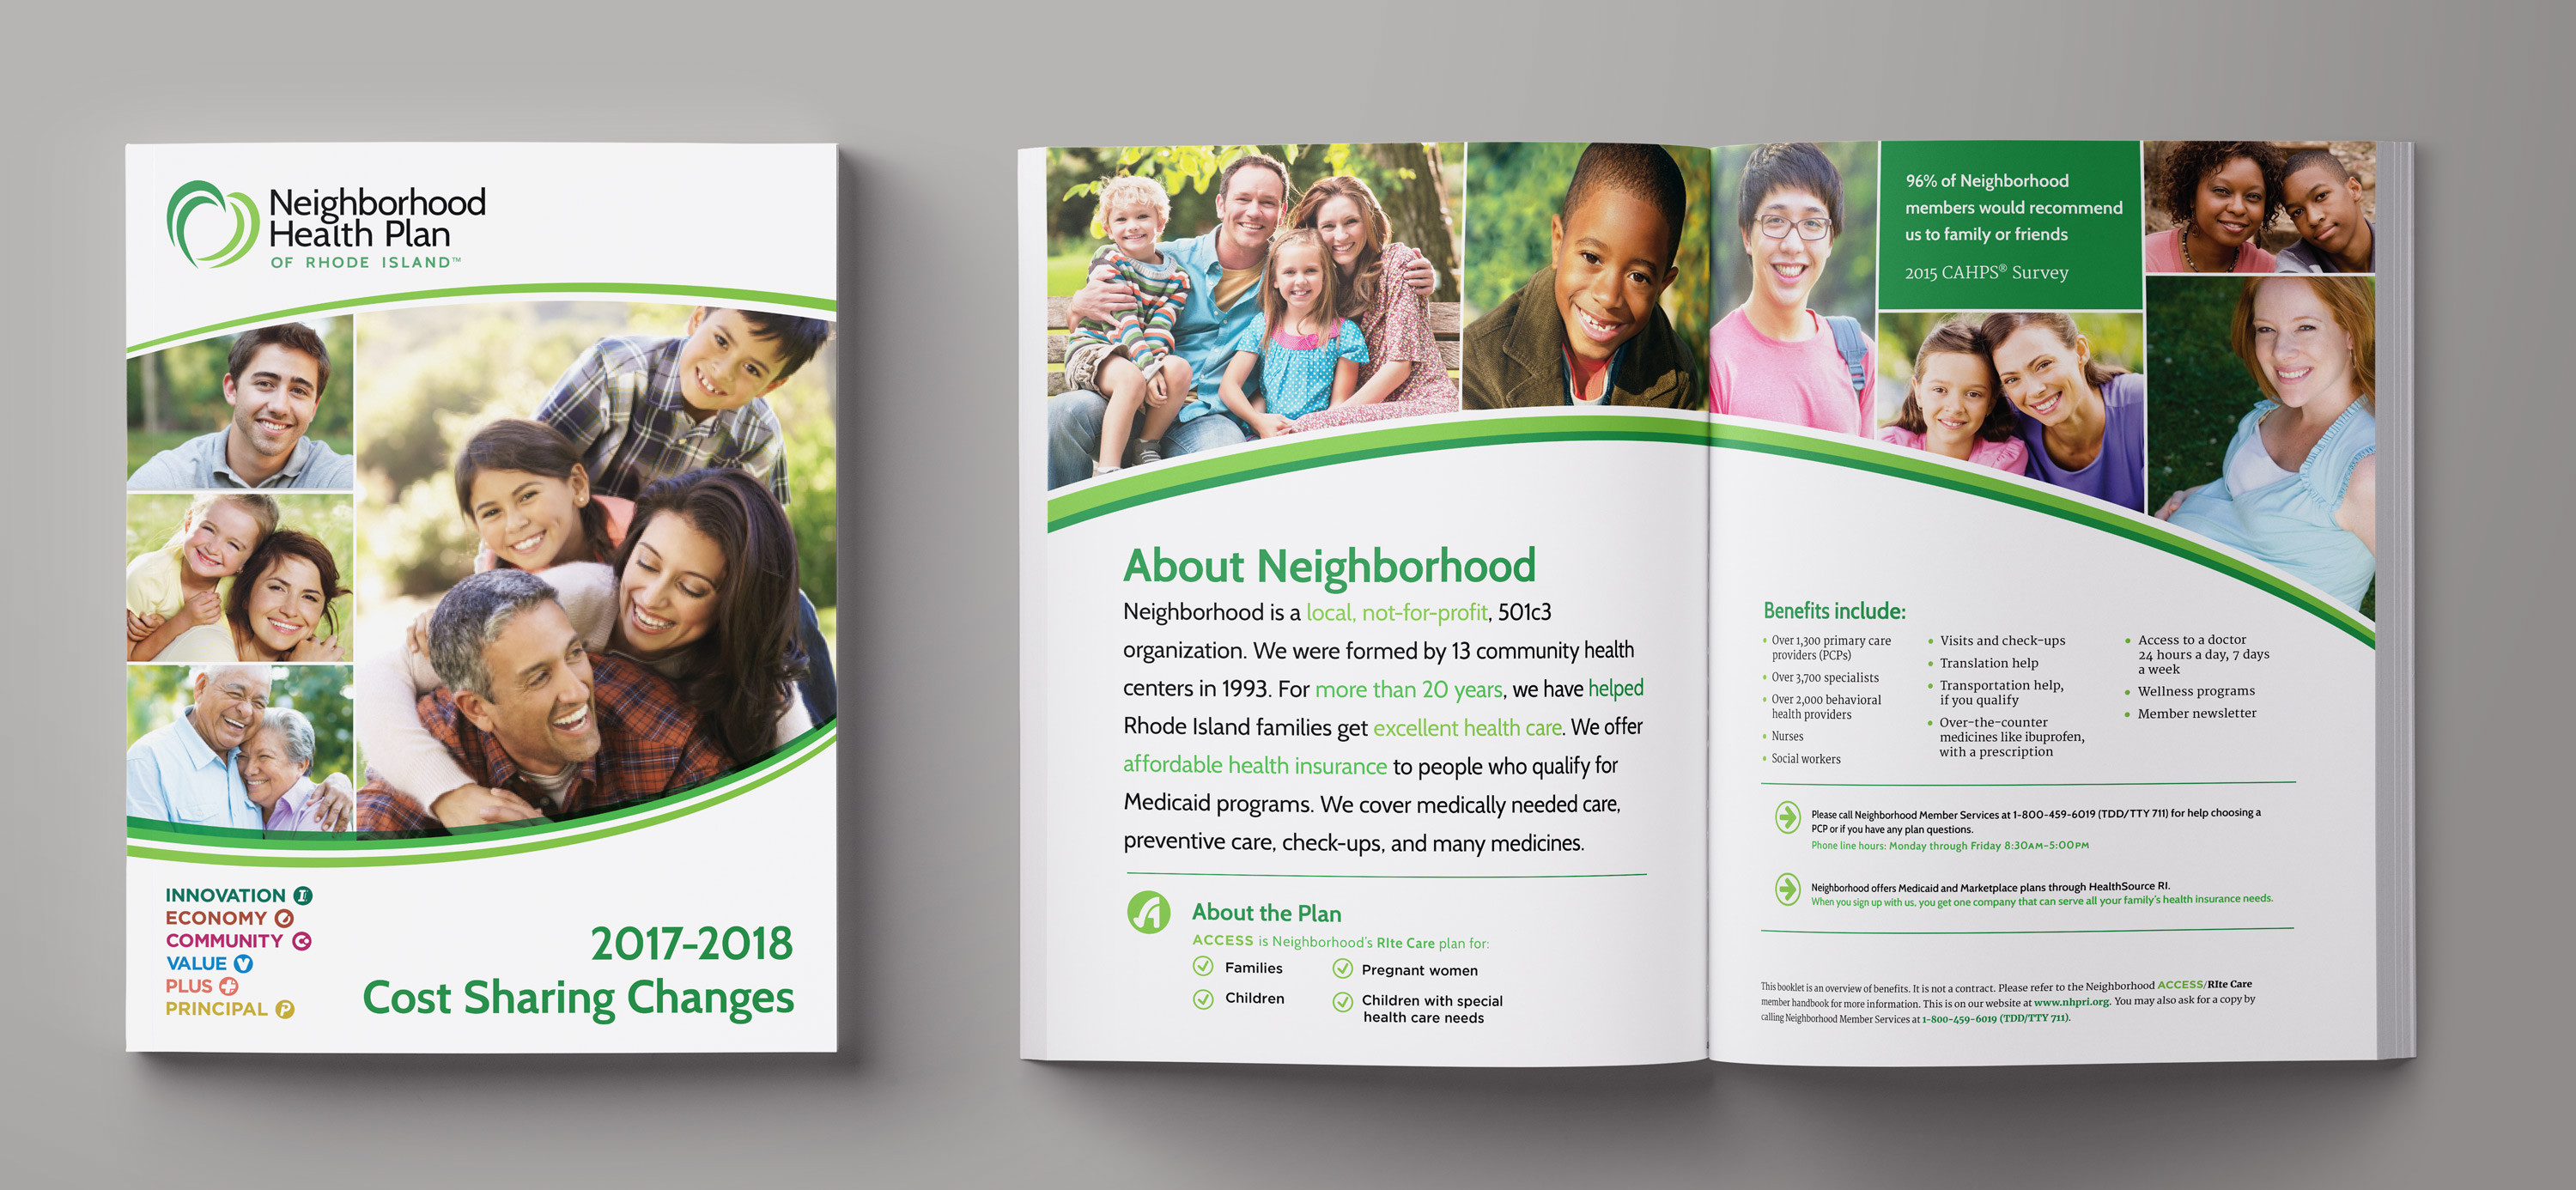 Neighborhood Health Plan Of Rhode Island Mattie Wells